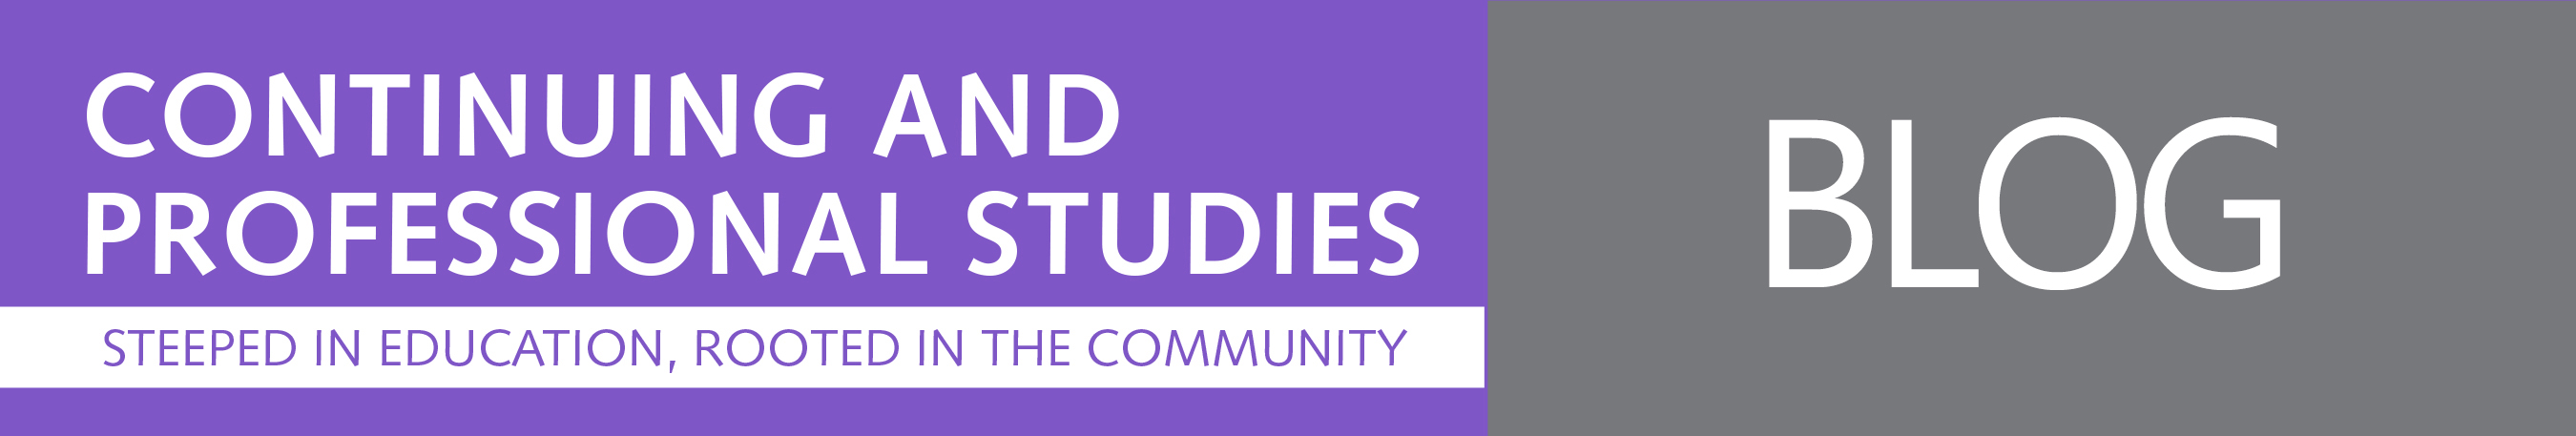 Continuing And Professional Studies Blog